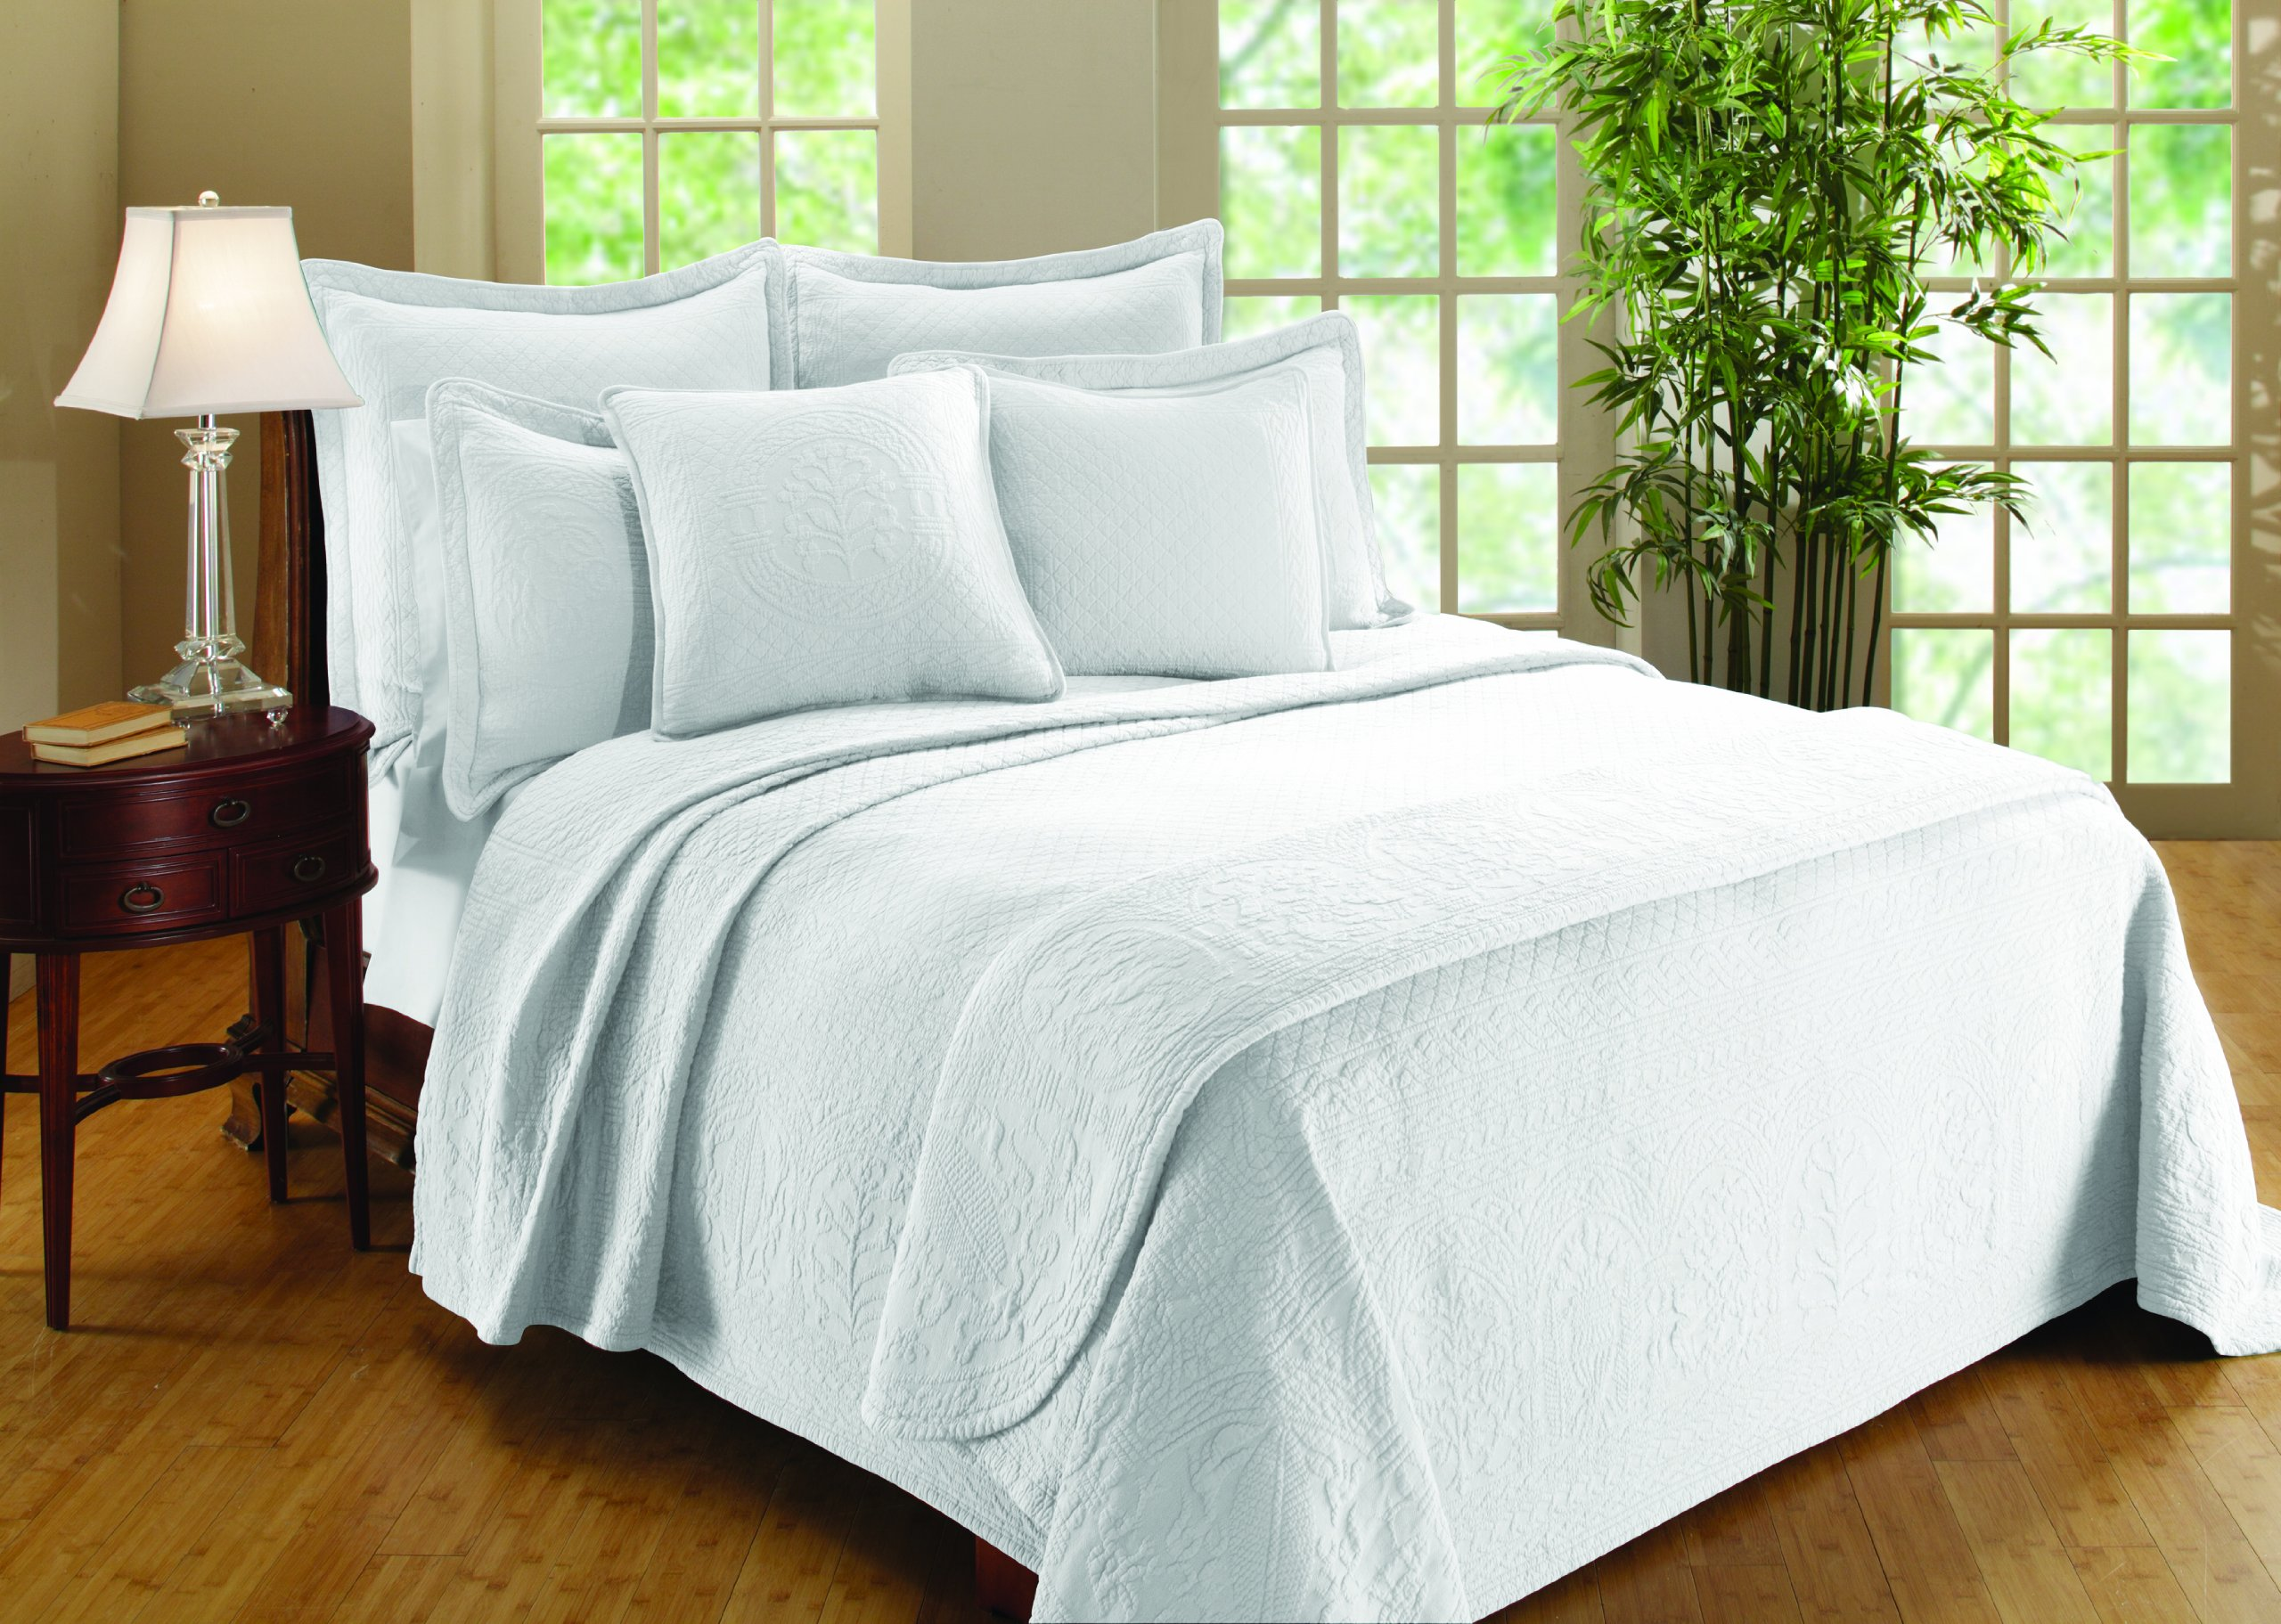 Williamsburg William and Mary Matelasse King Bedspread, White